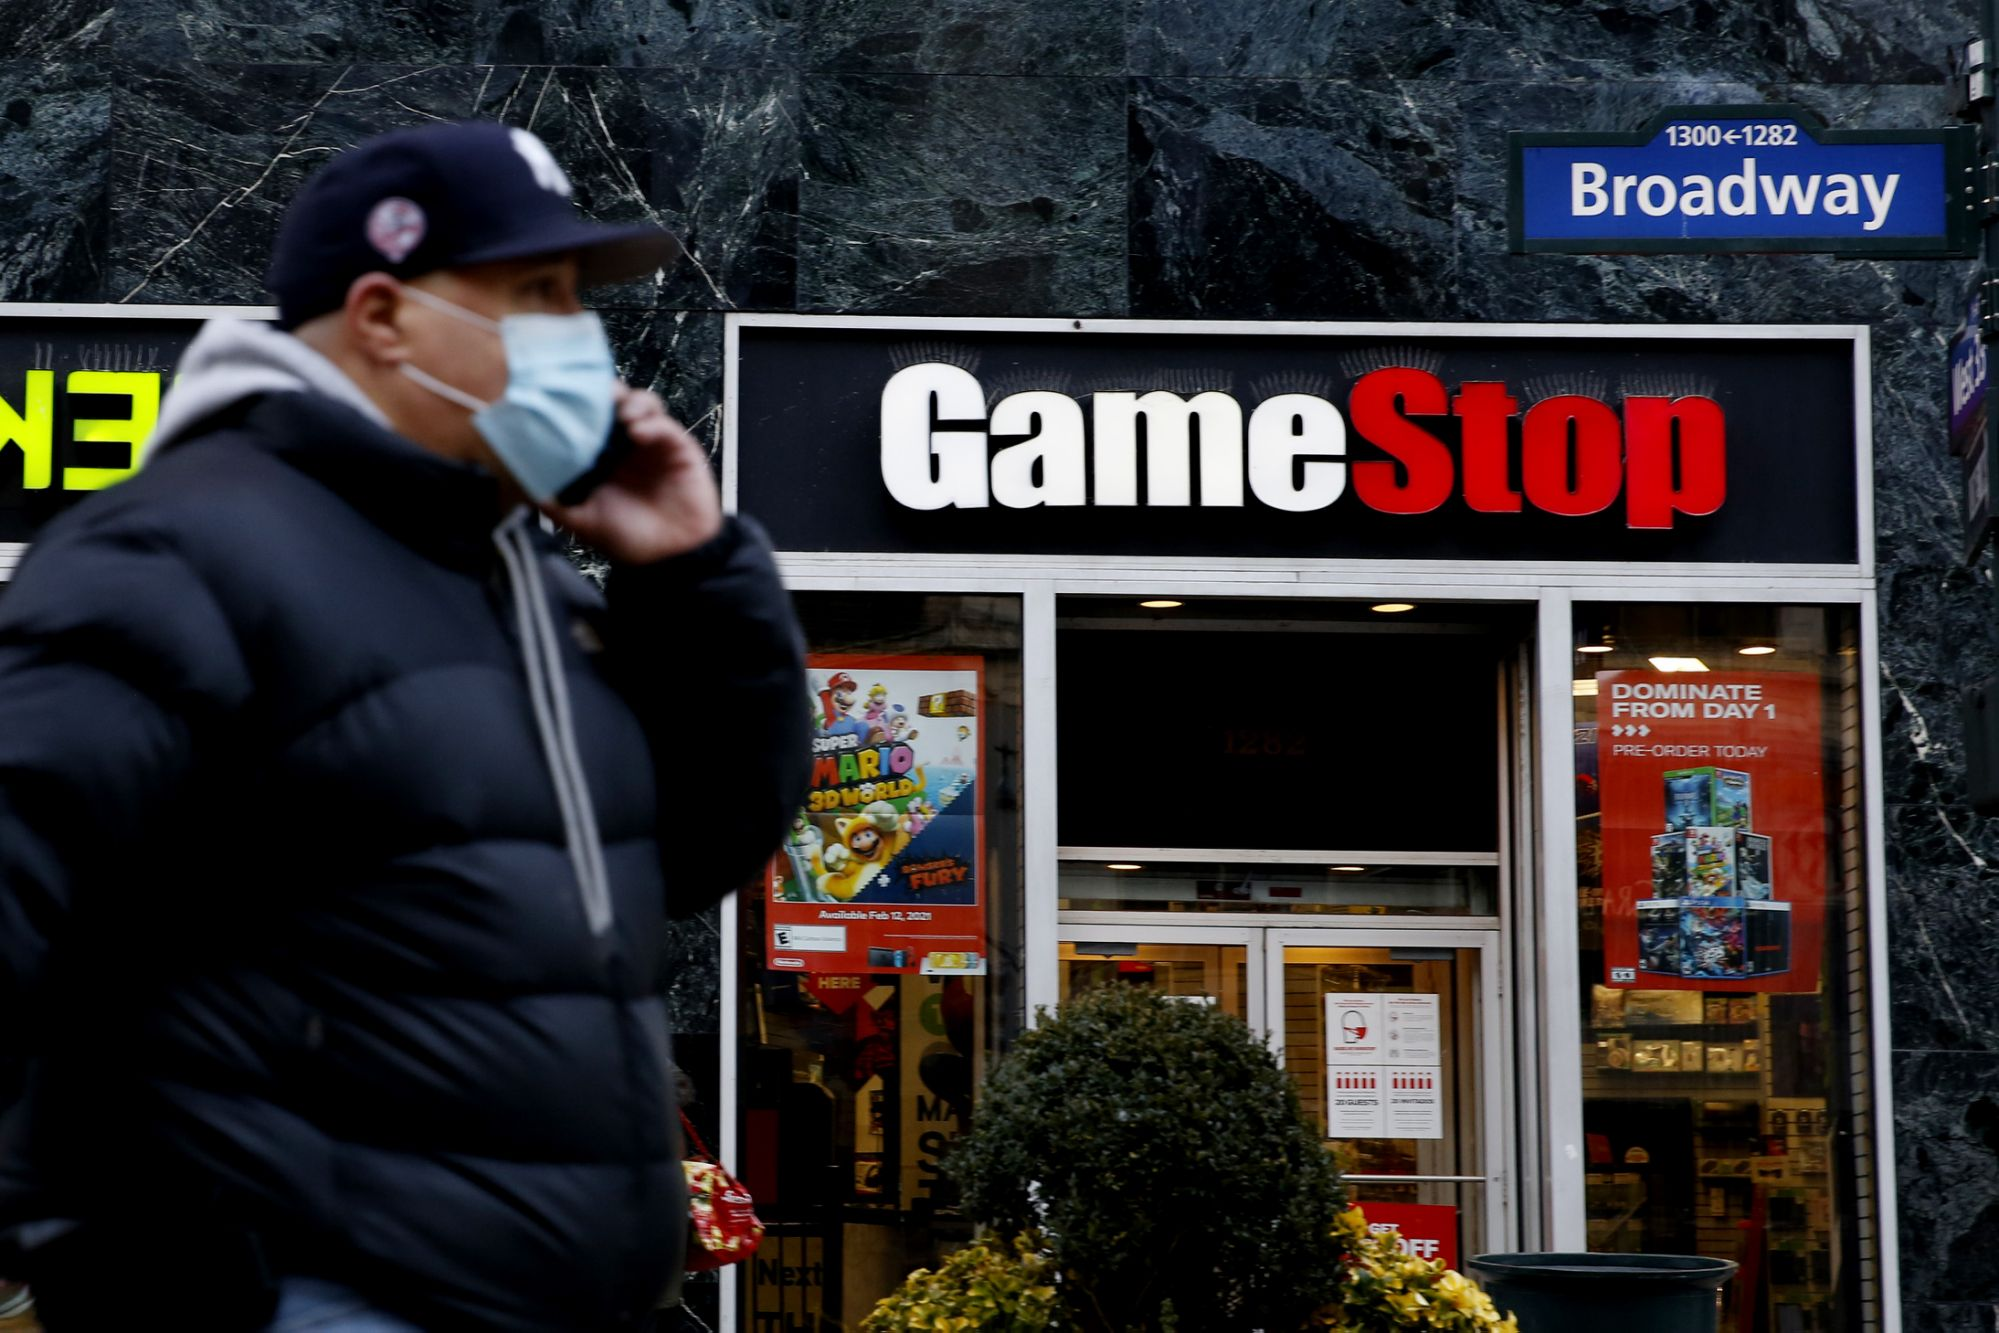 gamestop-earnings,-inflation-data:-what-to-know-in-the-week-ahead